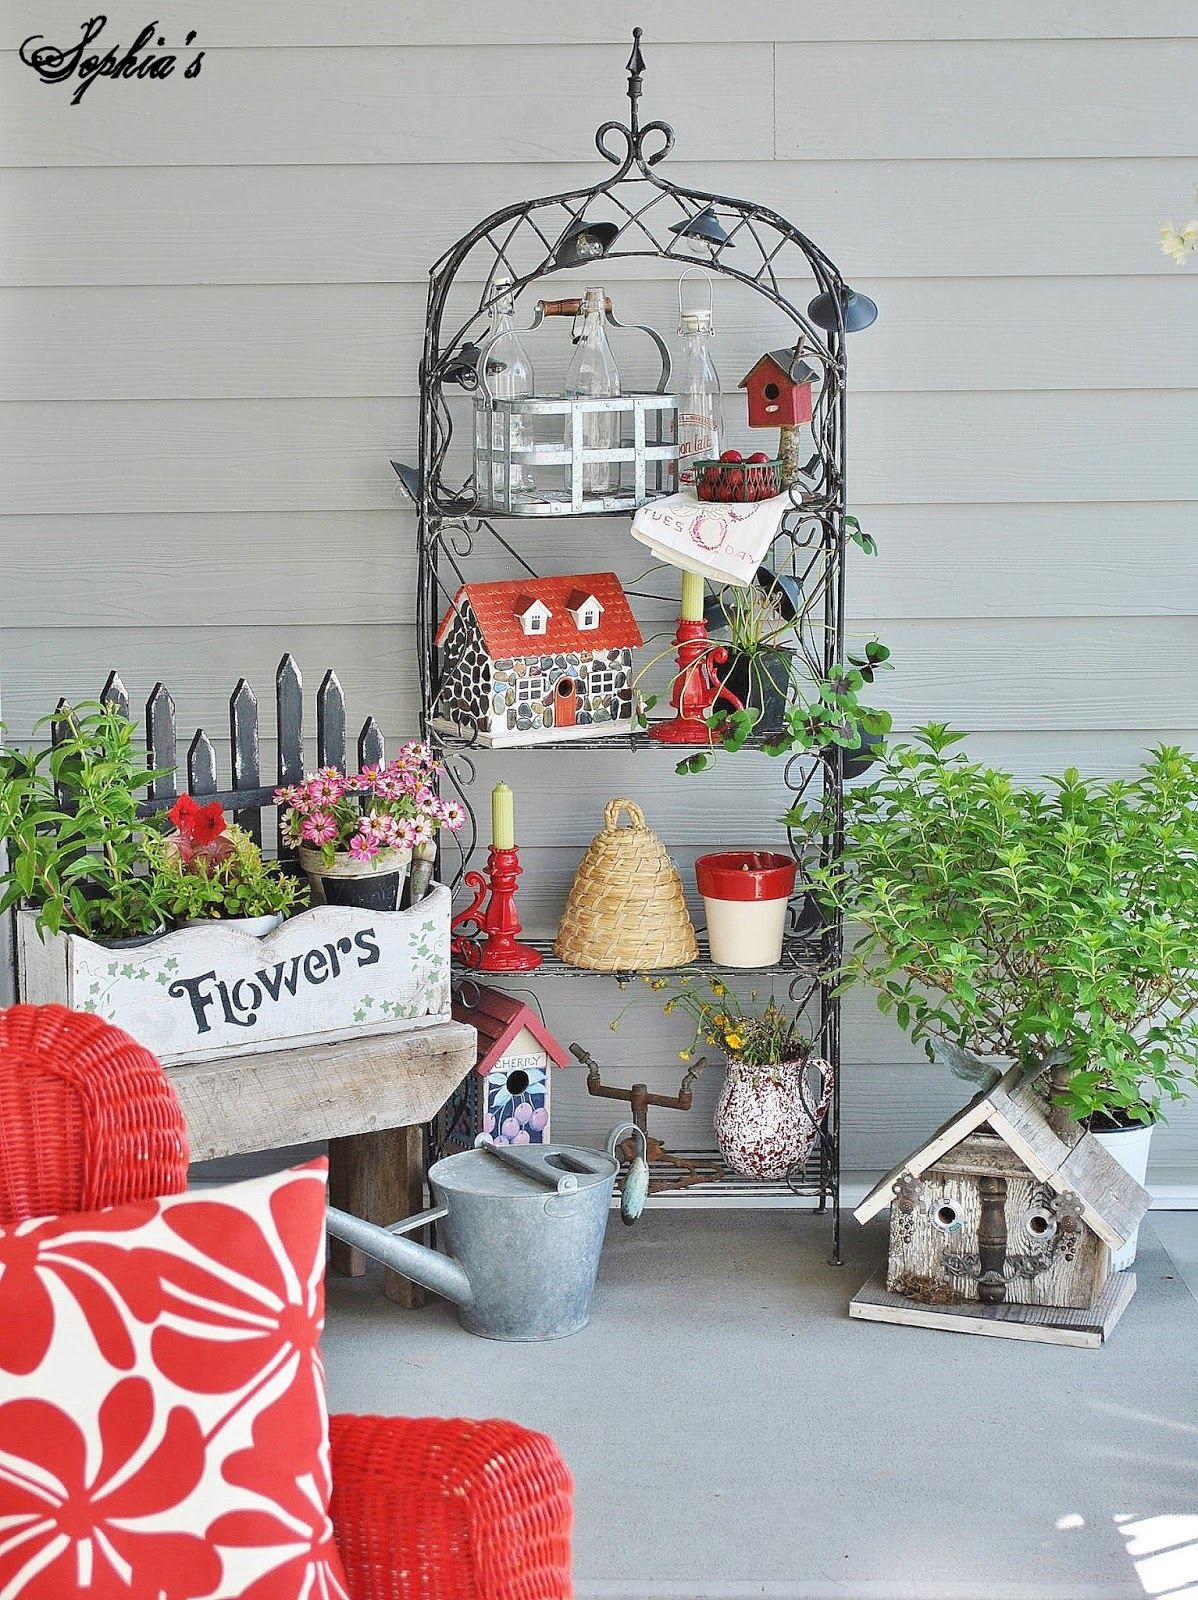 Sophia's: Farmhouse Style Front Porch with Pops of Red